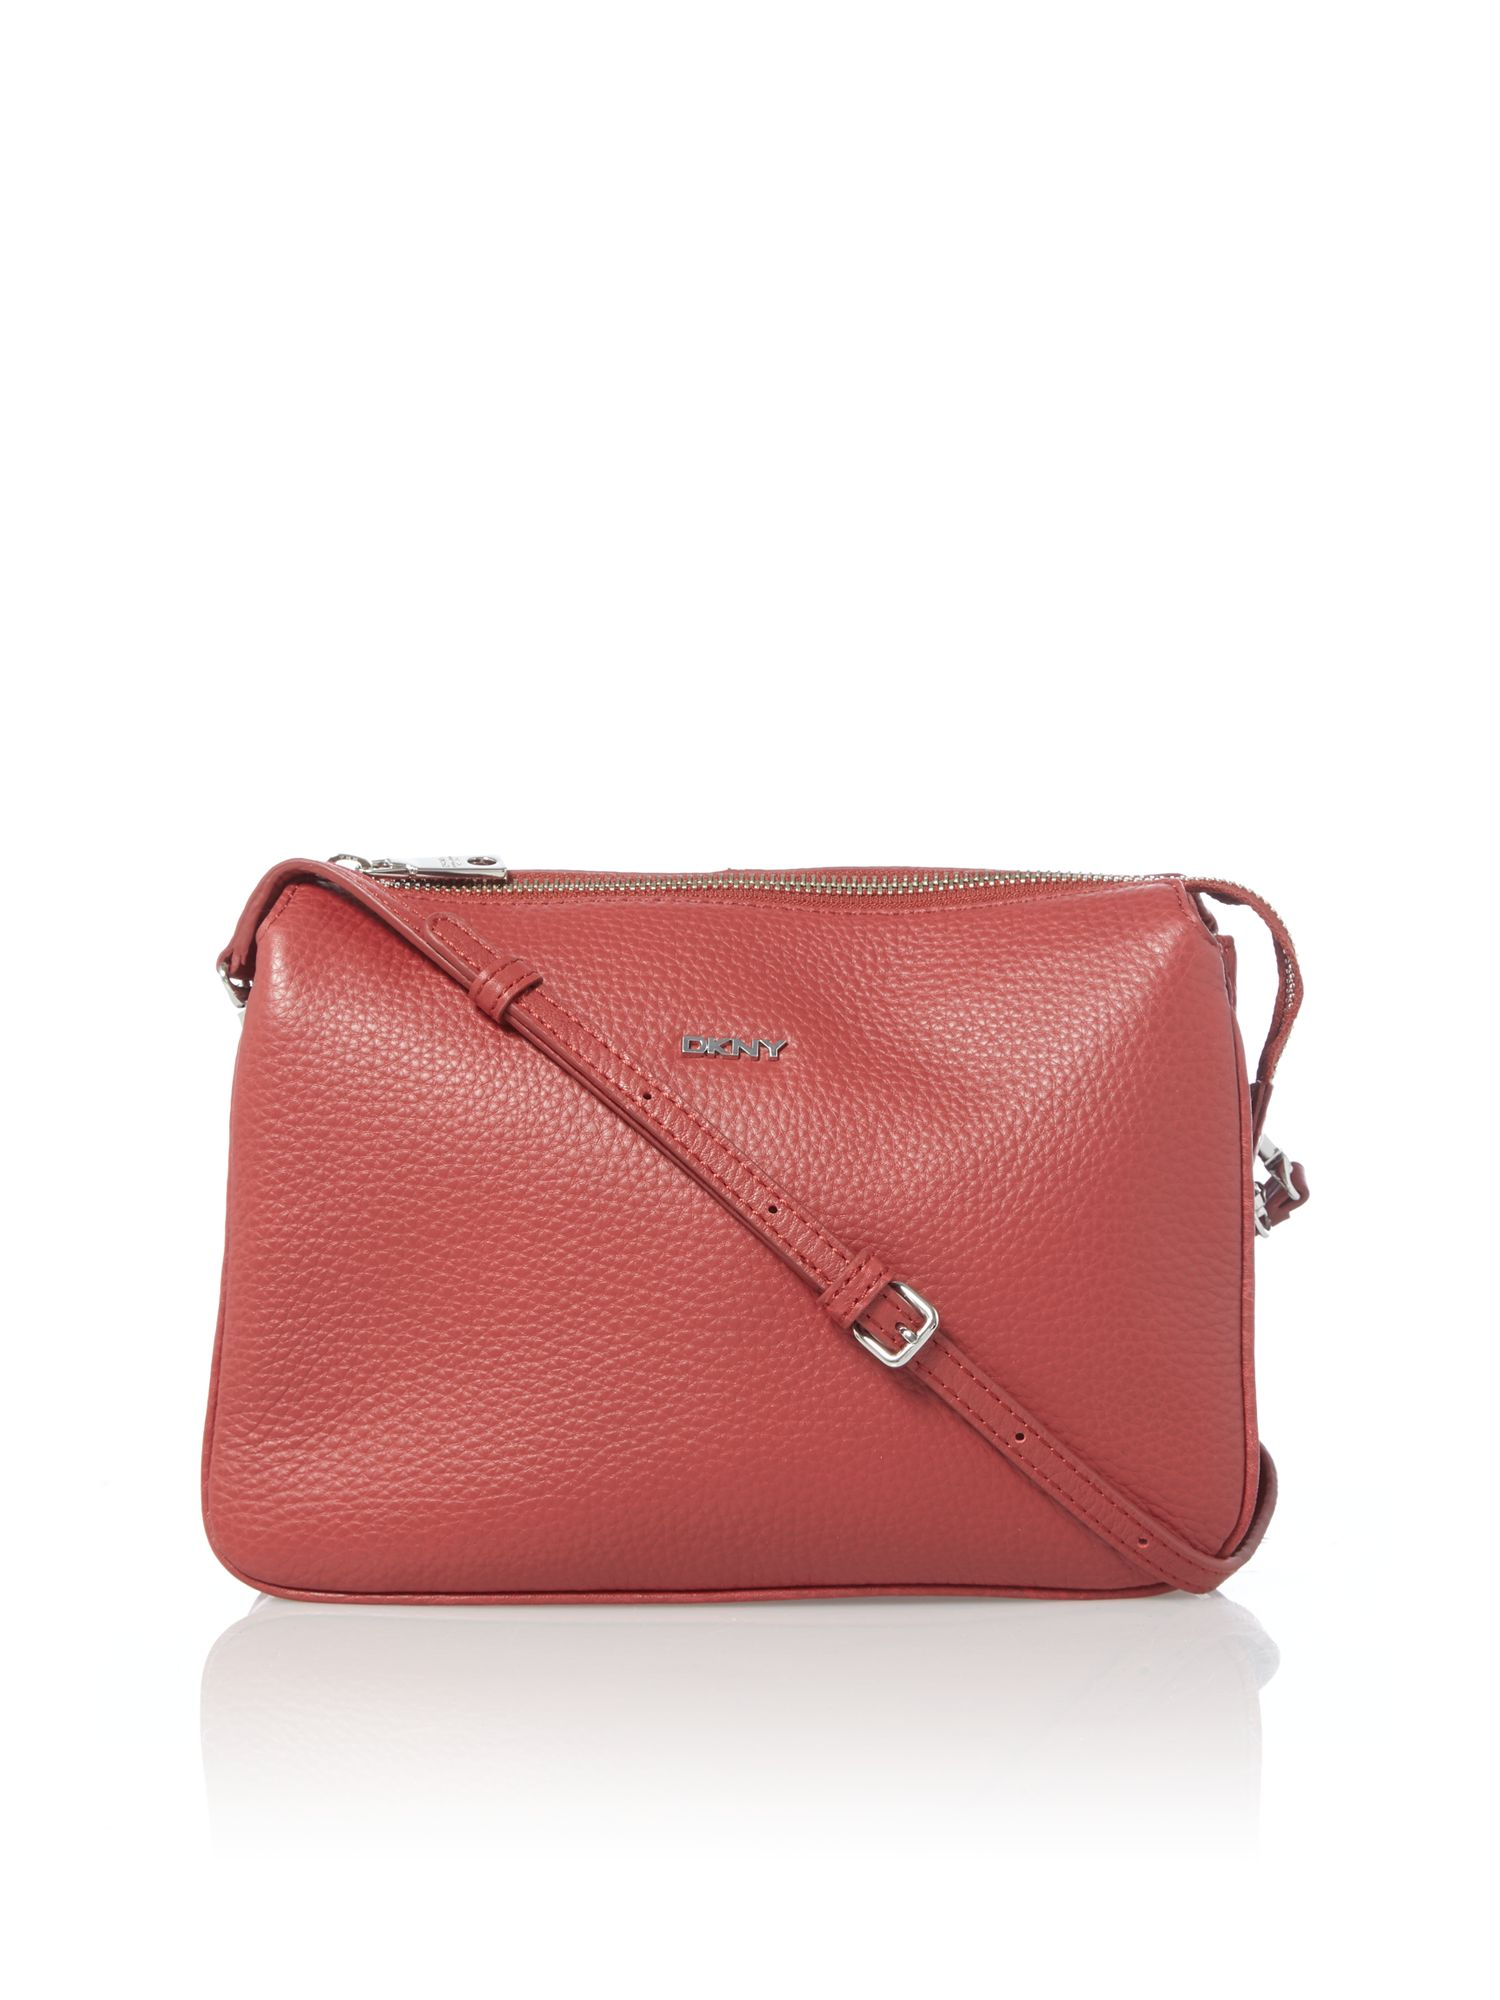 Tribeca soft red cross body bag